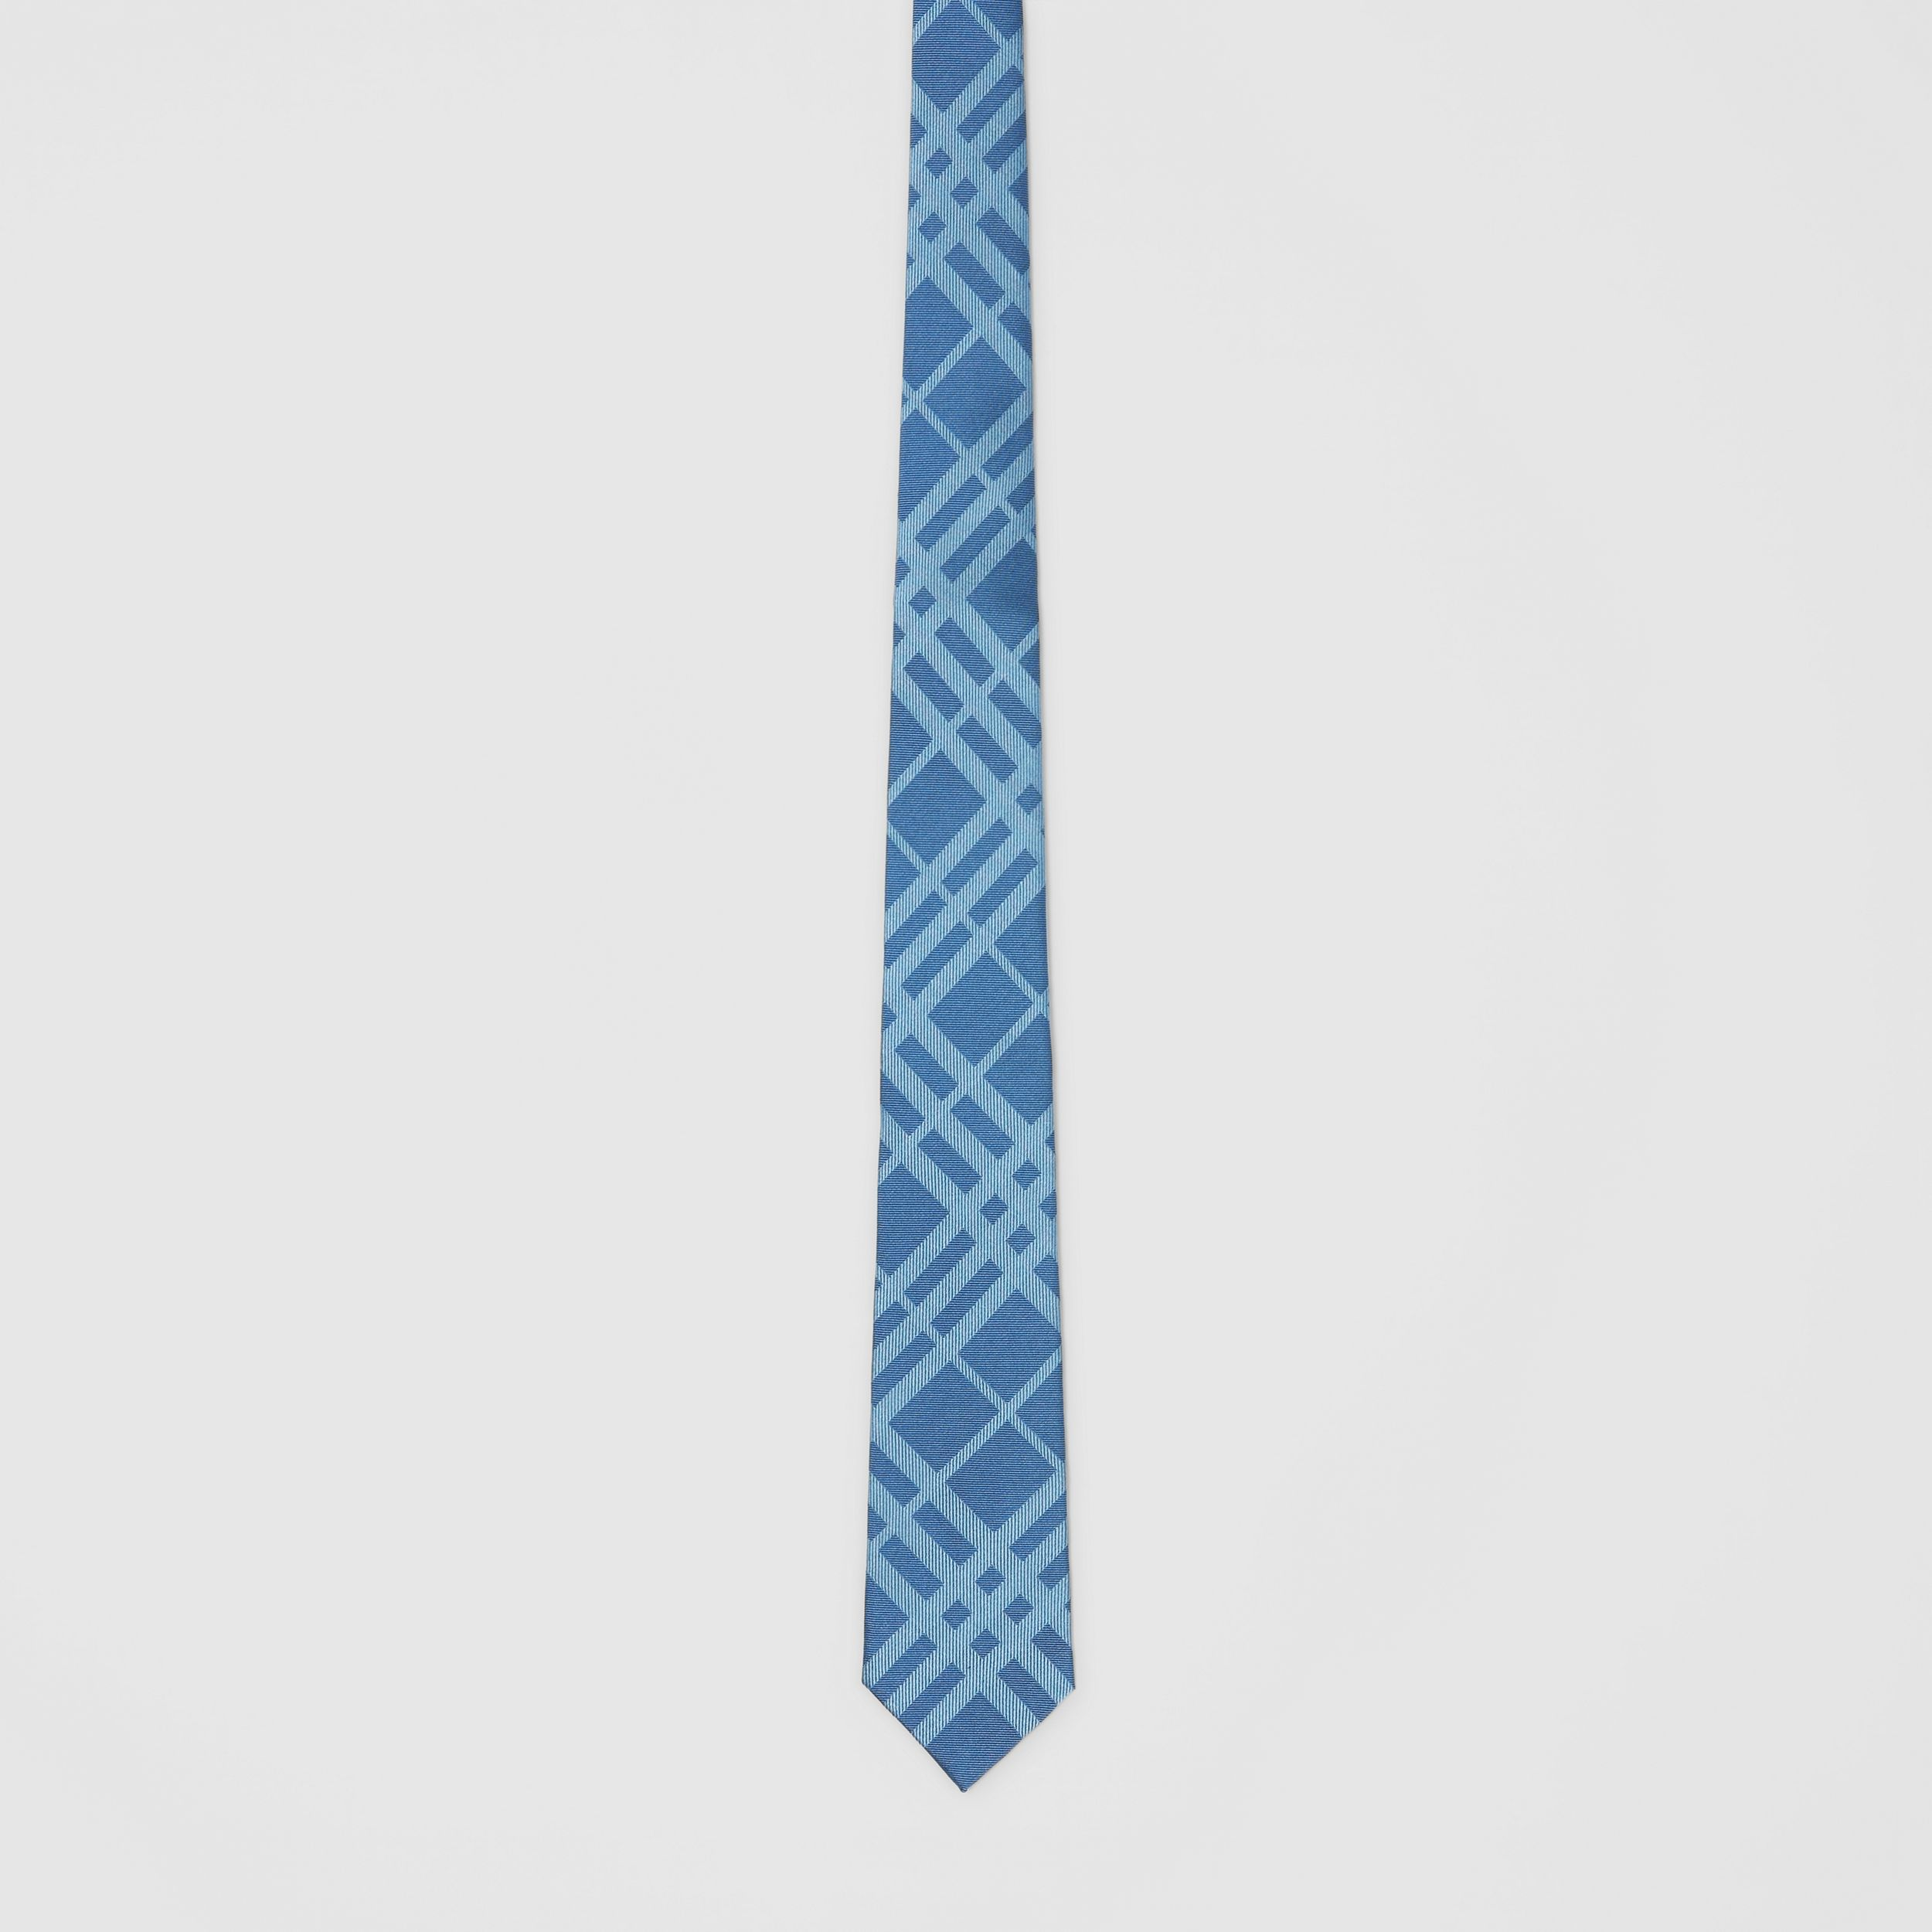 Classic Cut Check Silk Jacquard Tie in Blue Topaz - Men | Burberry - 4